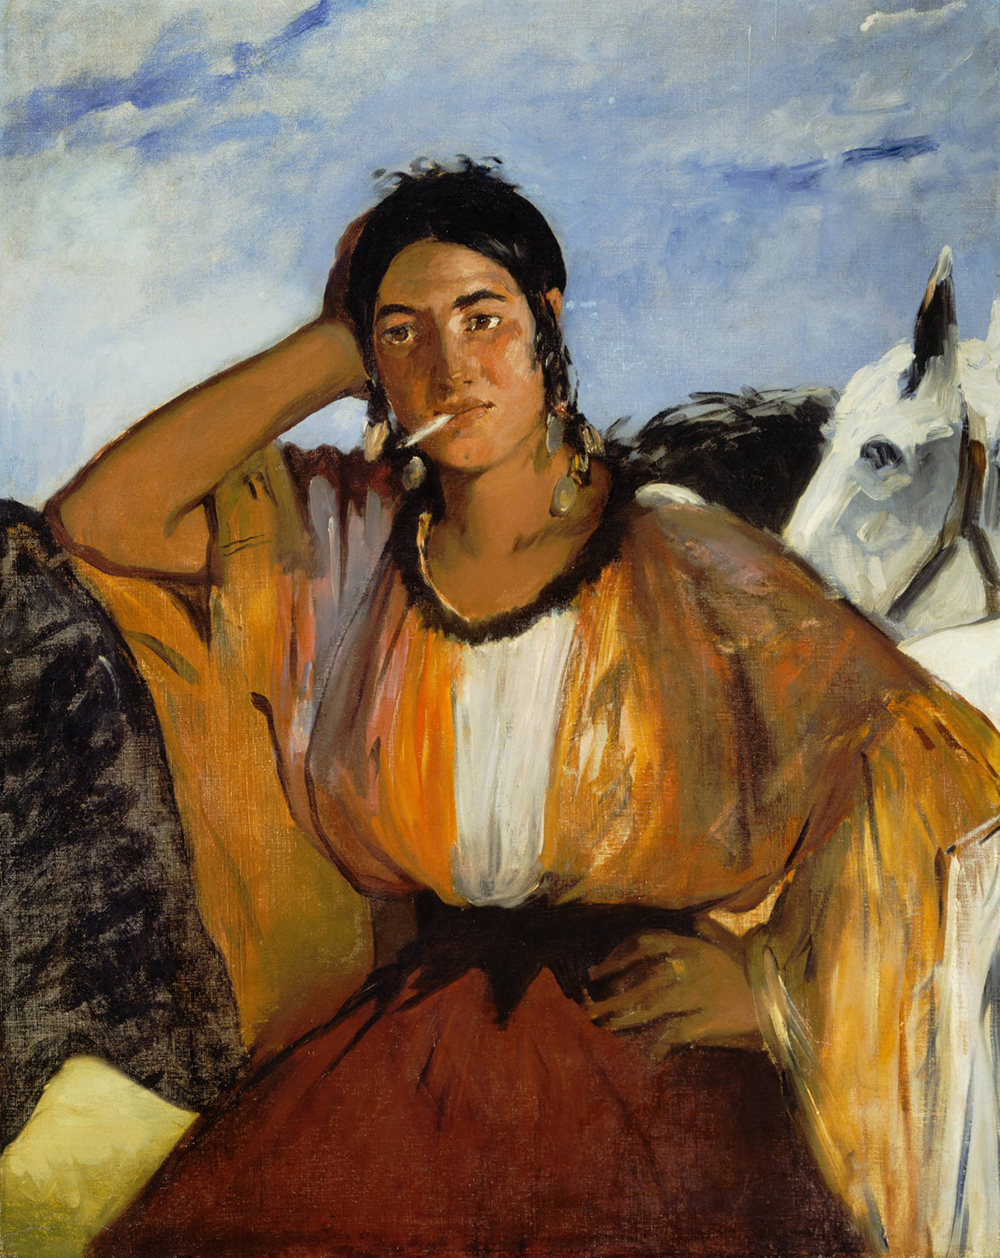 Gypsy with a Cigarette, by Édouard Manet. Princeton University Art Museum.